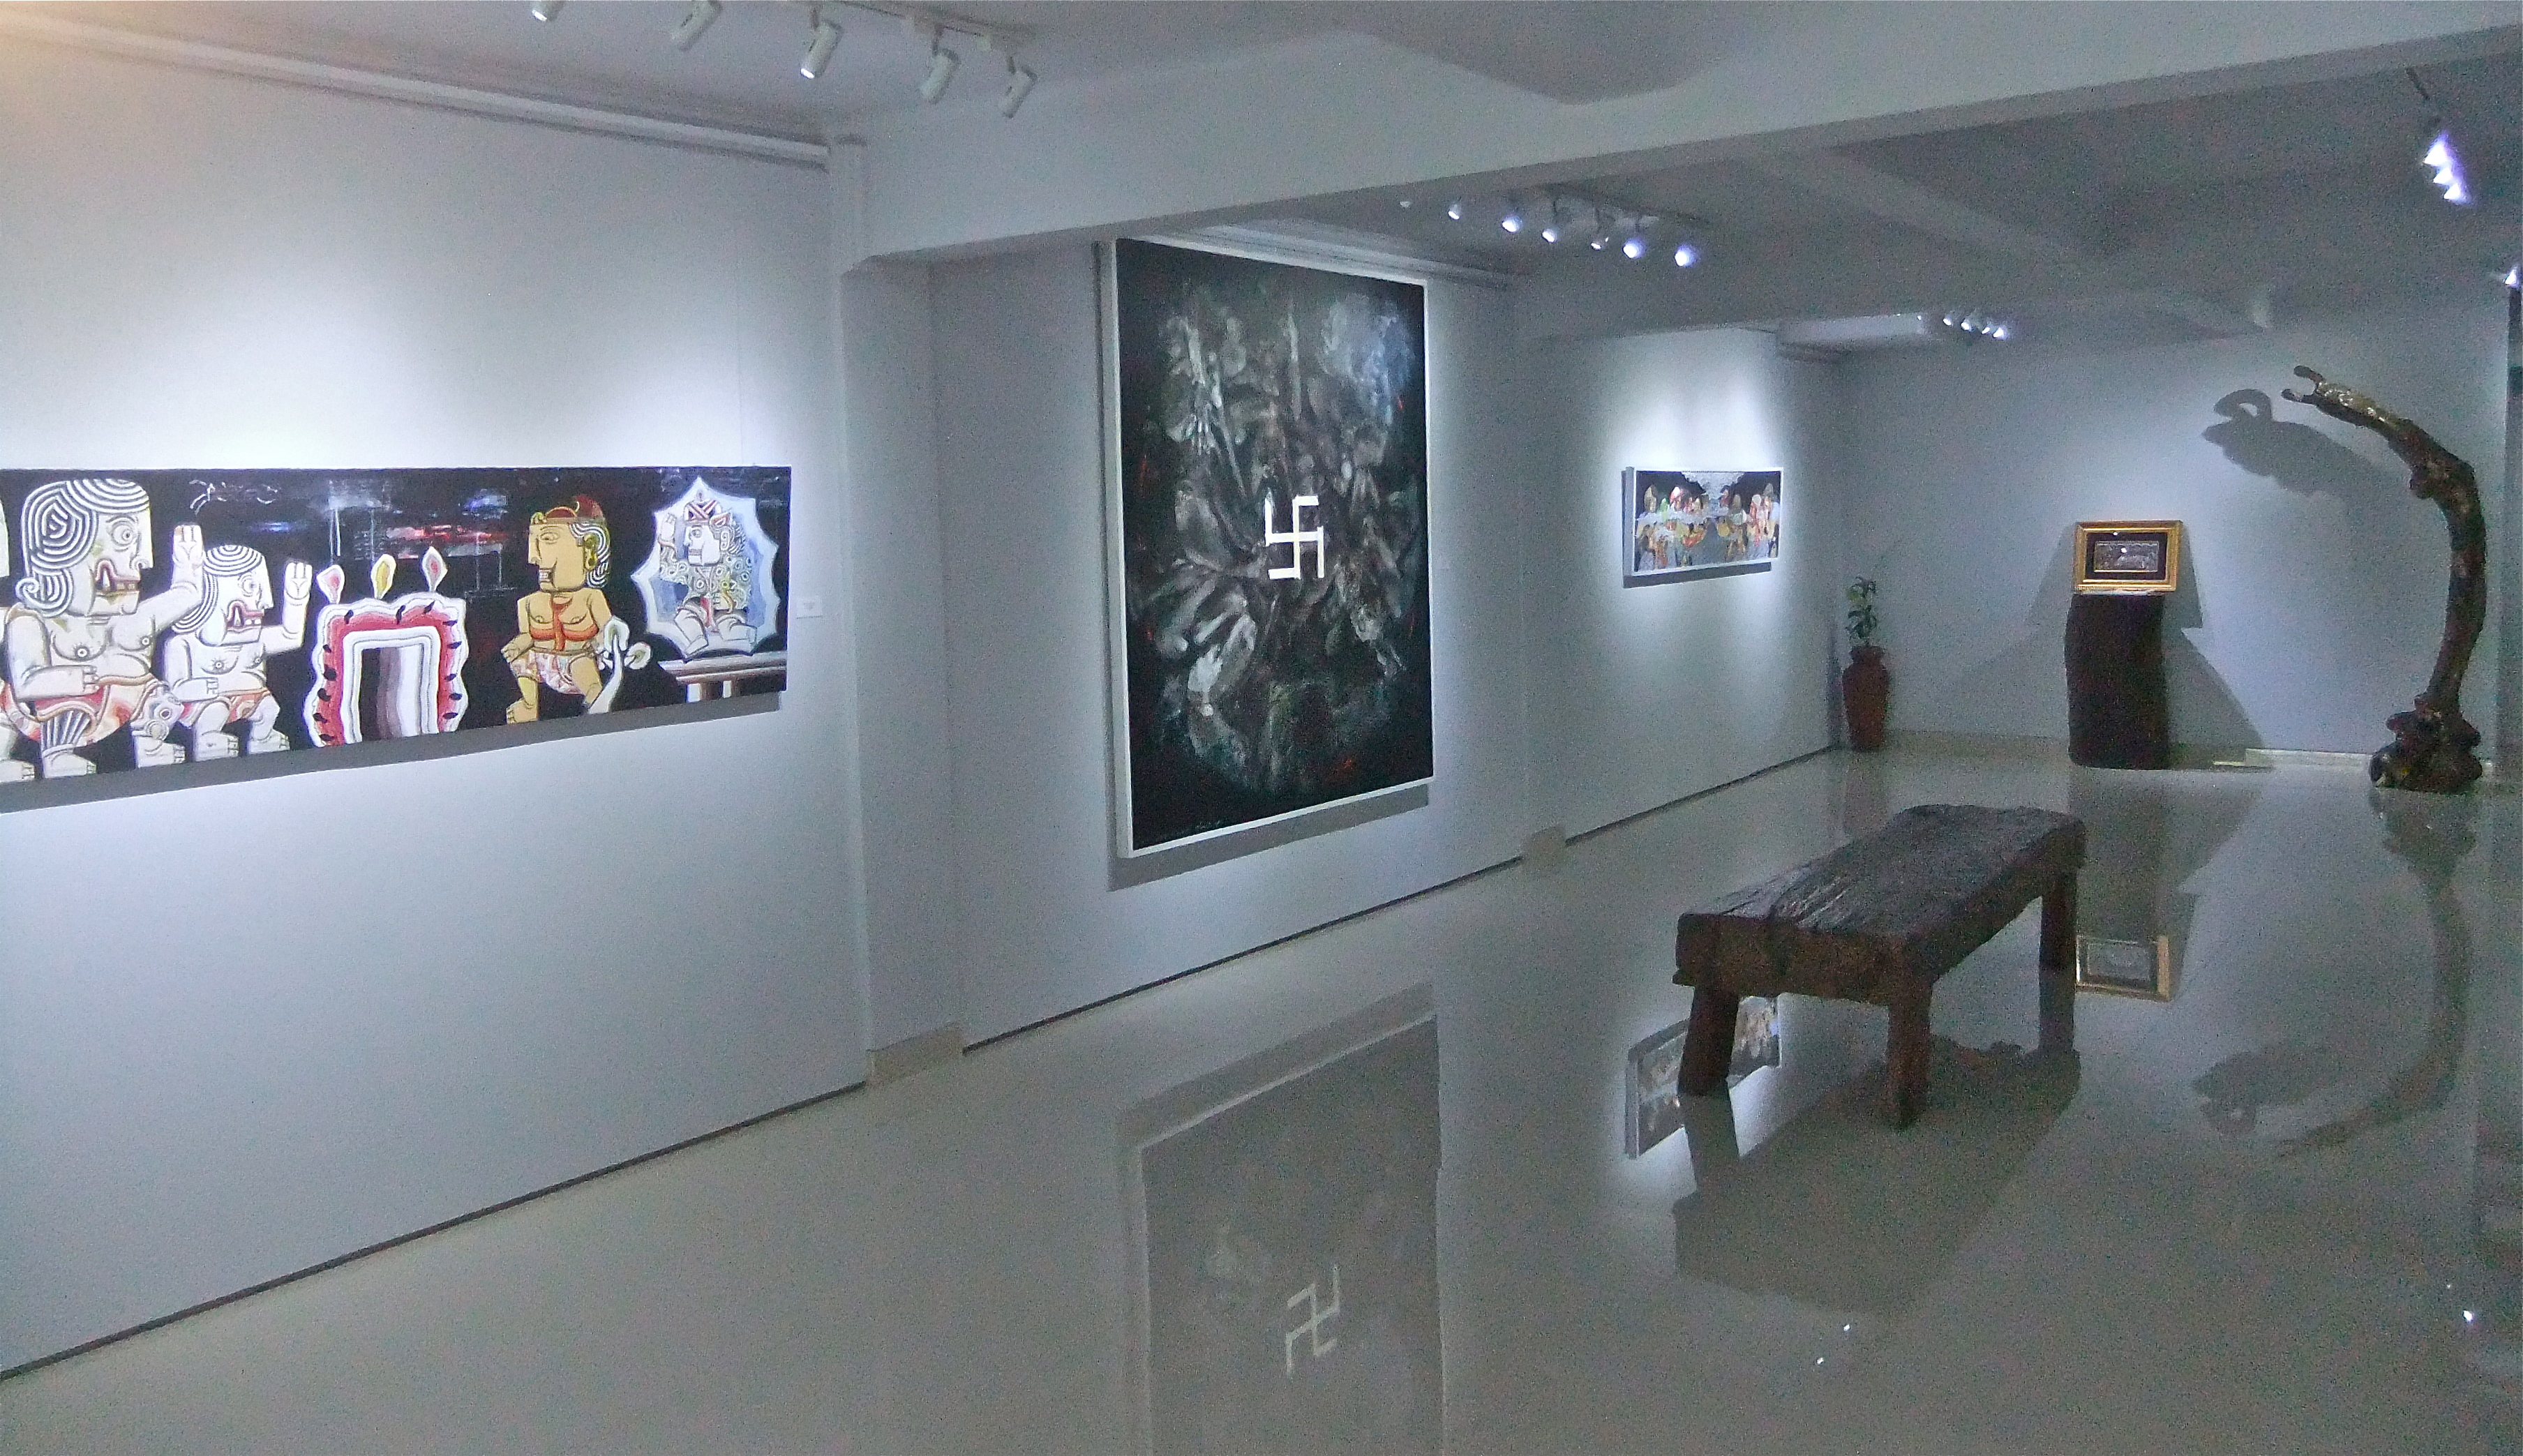 TiTian Art Space. Image by Richard Horstman